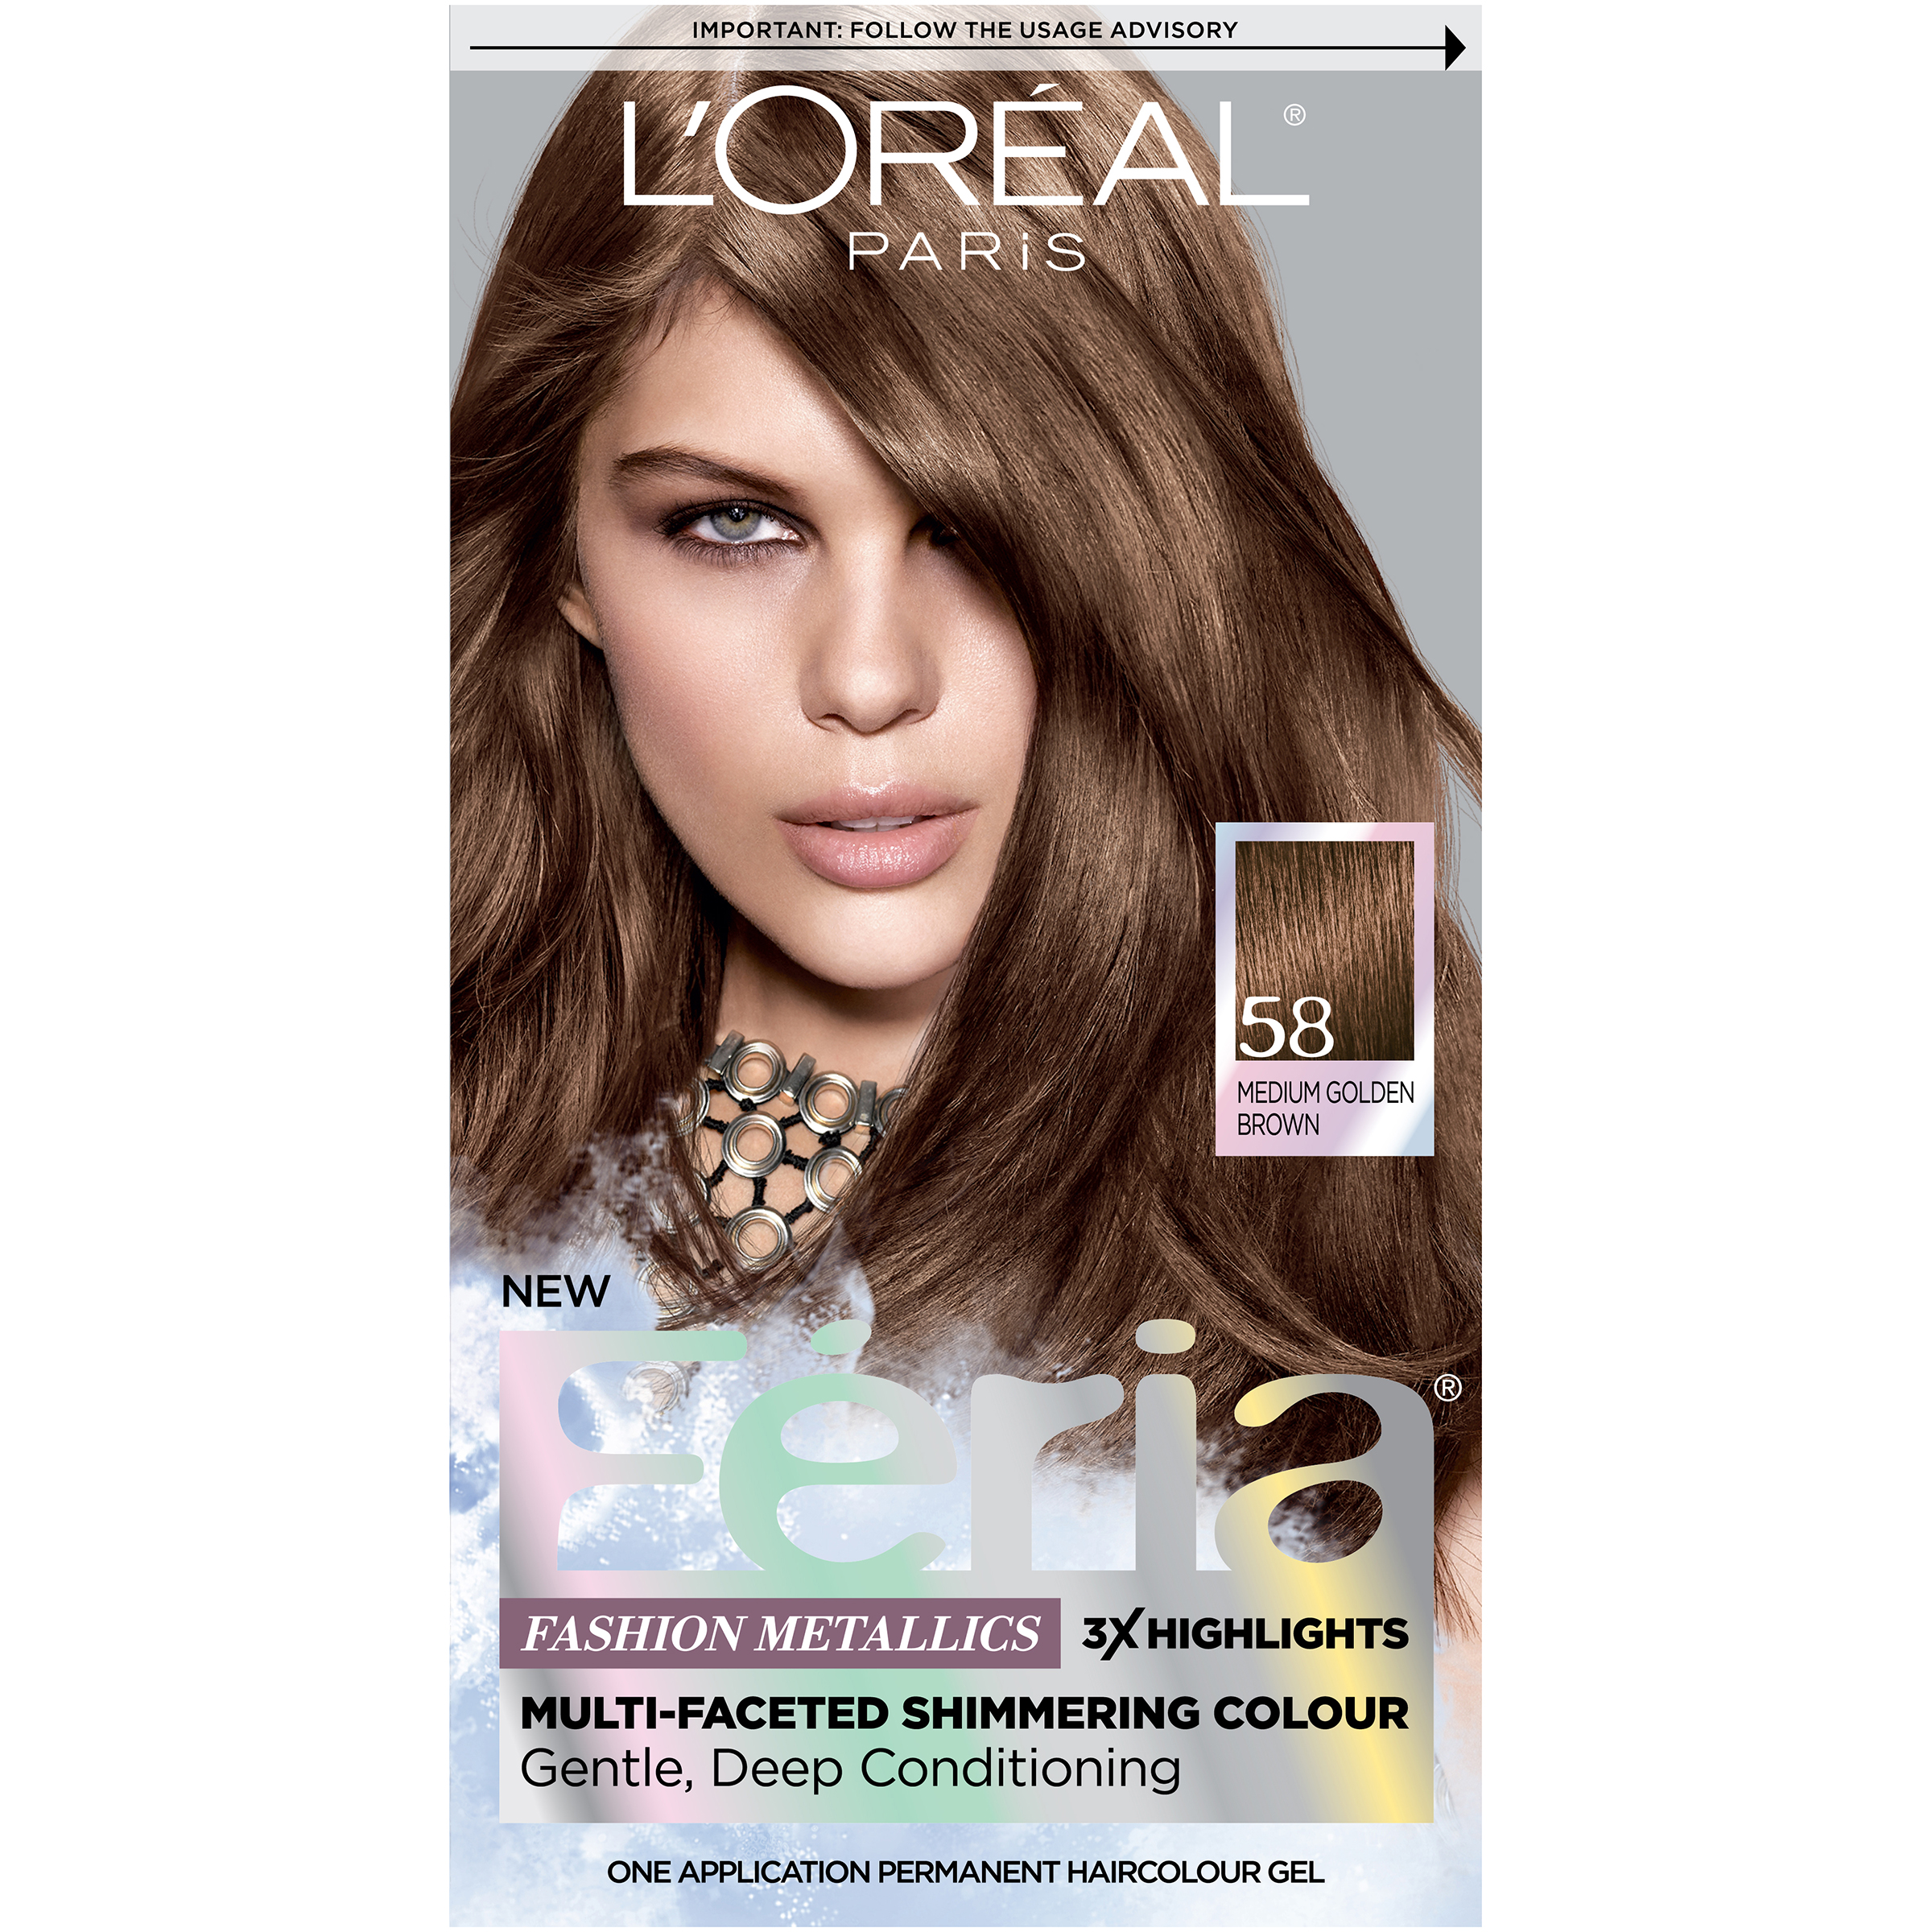 Loreal Feria Multi Faceted Shimmering Haircolor 58 Bronze Shimmer